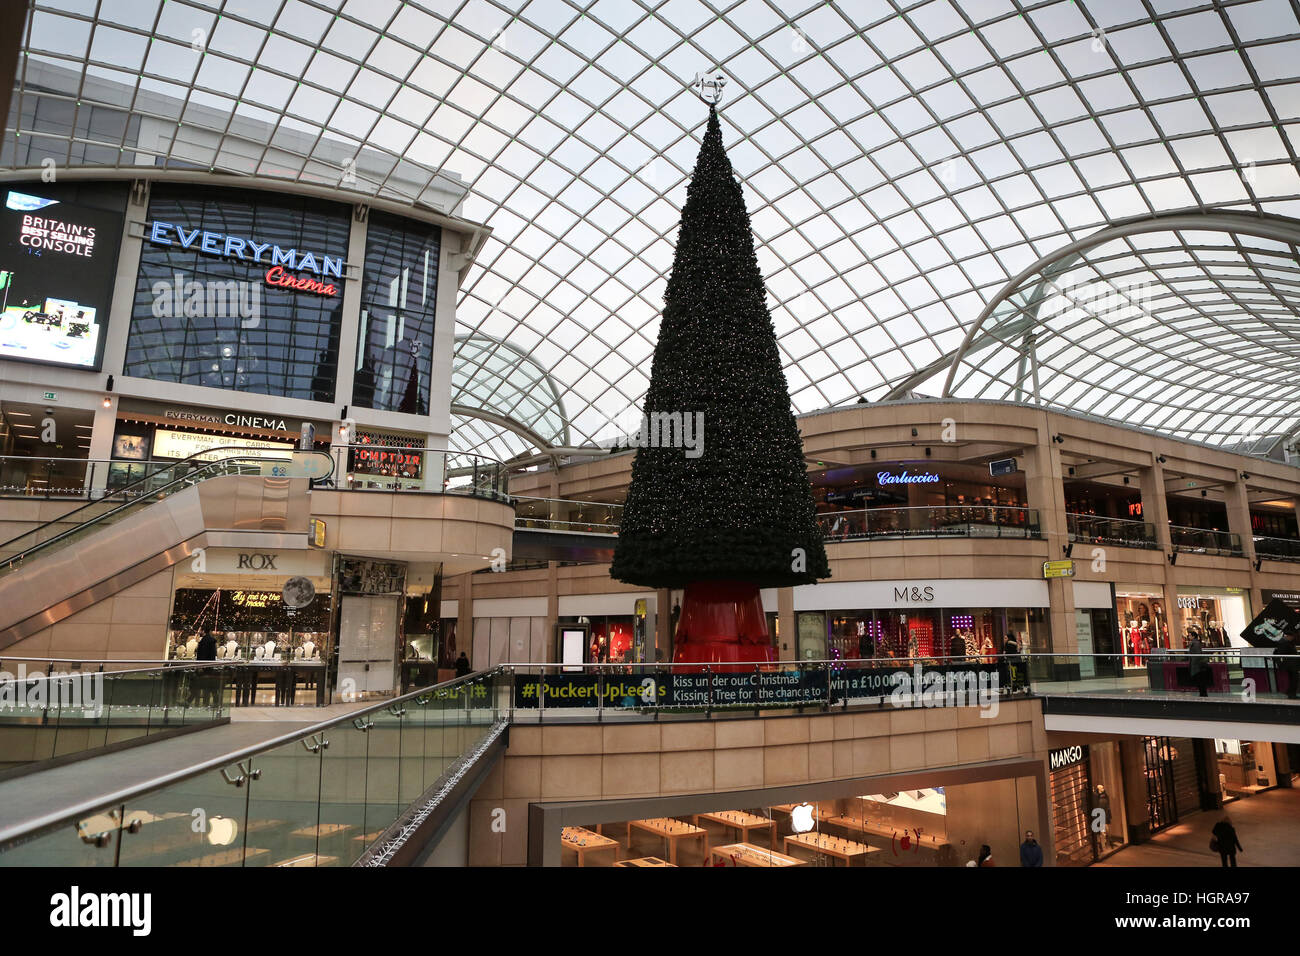 02/12/16, Leeds, UK. A Christmas tree and festive decorations adorn the Trinity shopping centre in Leeds, West Yorkshire. - Stock Image